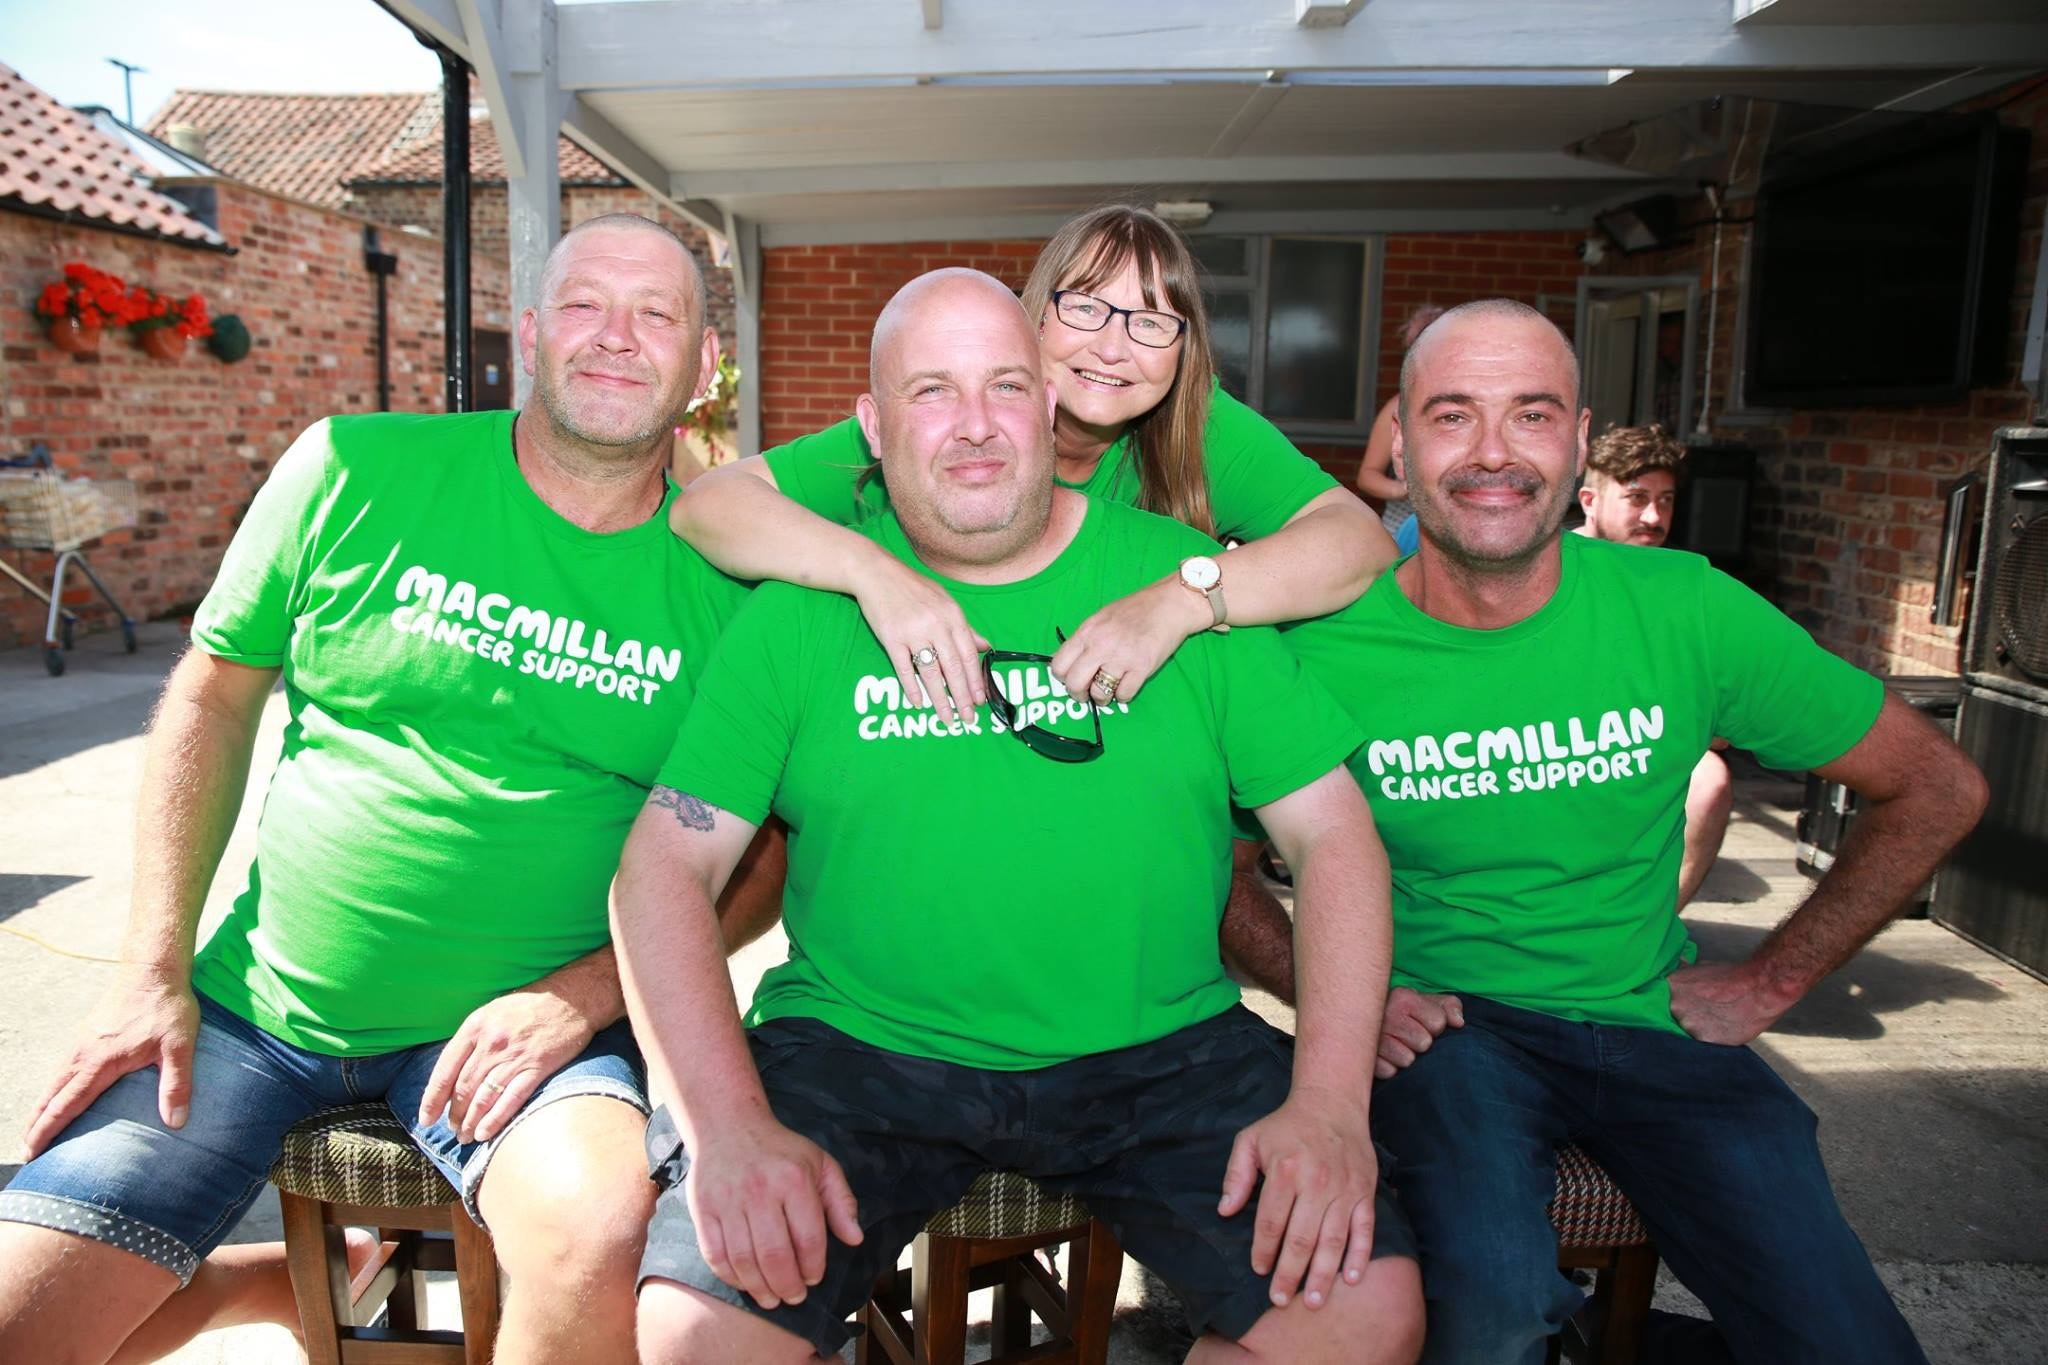 SHAVE: Stephen Claxton, Steve Moss and Darren Plant had their heads shaved. With Wendy Claxton